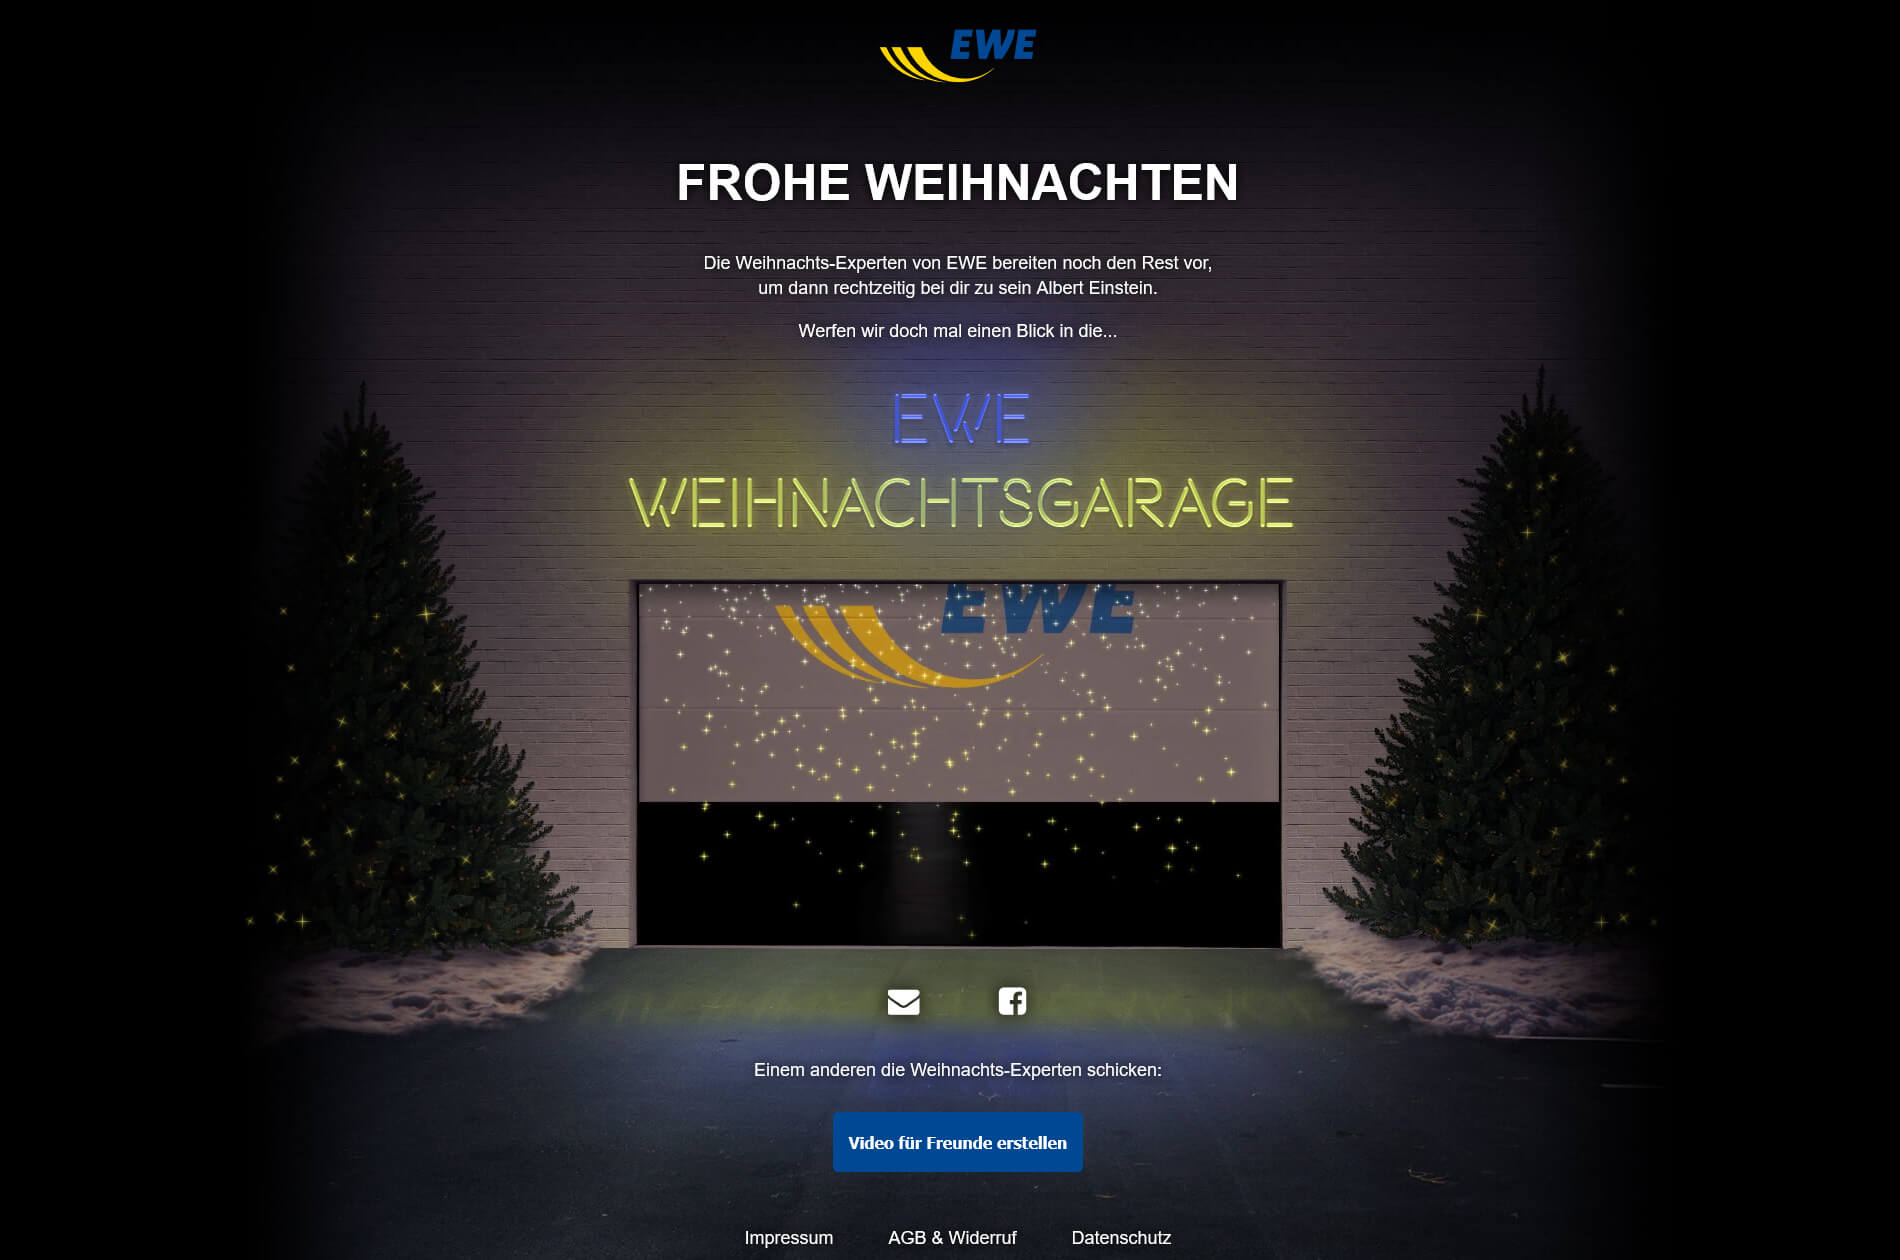 ewe-weihnachtsgruss-2017-website-desktop